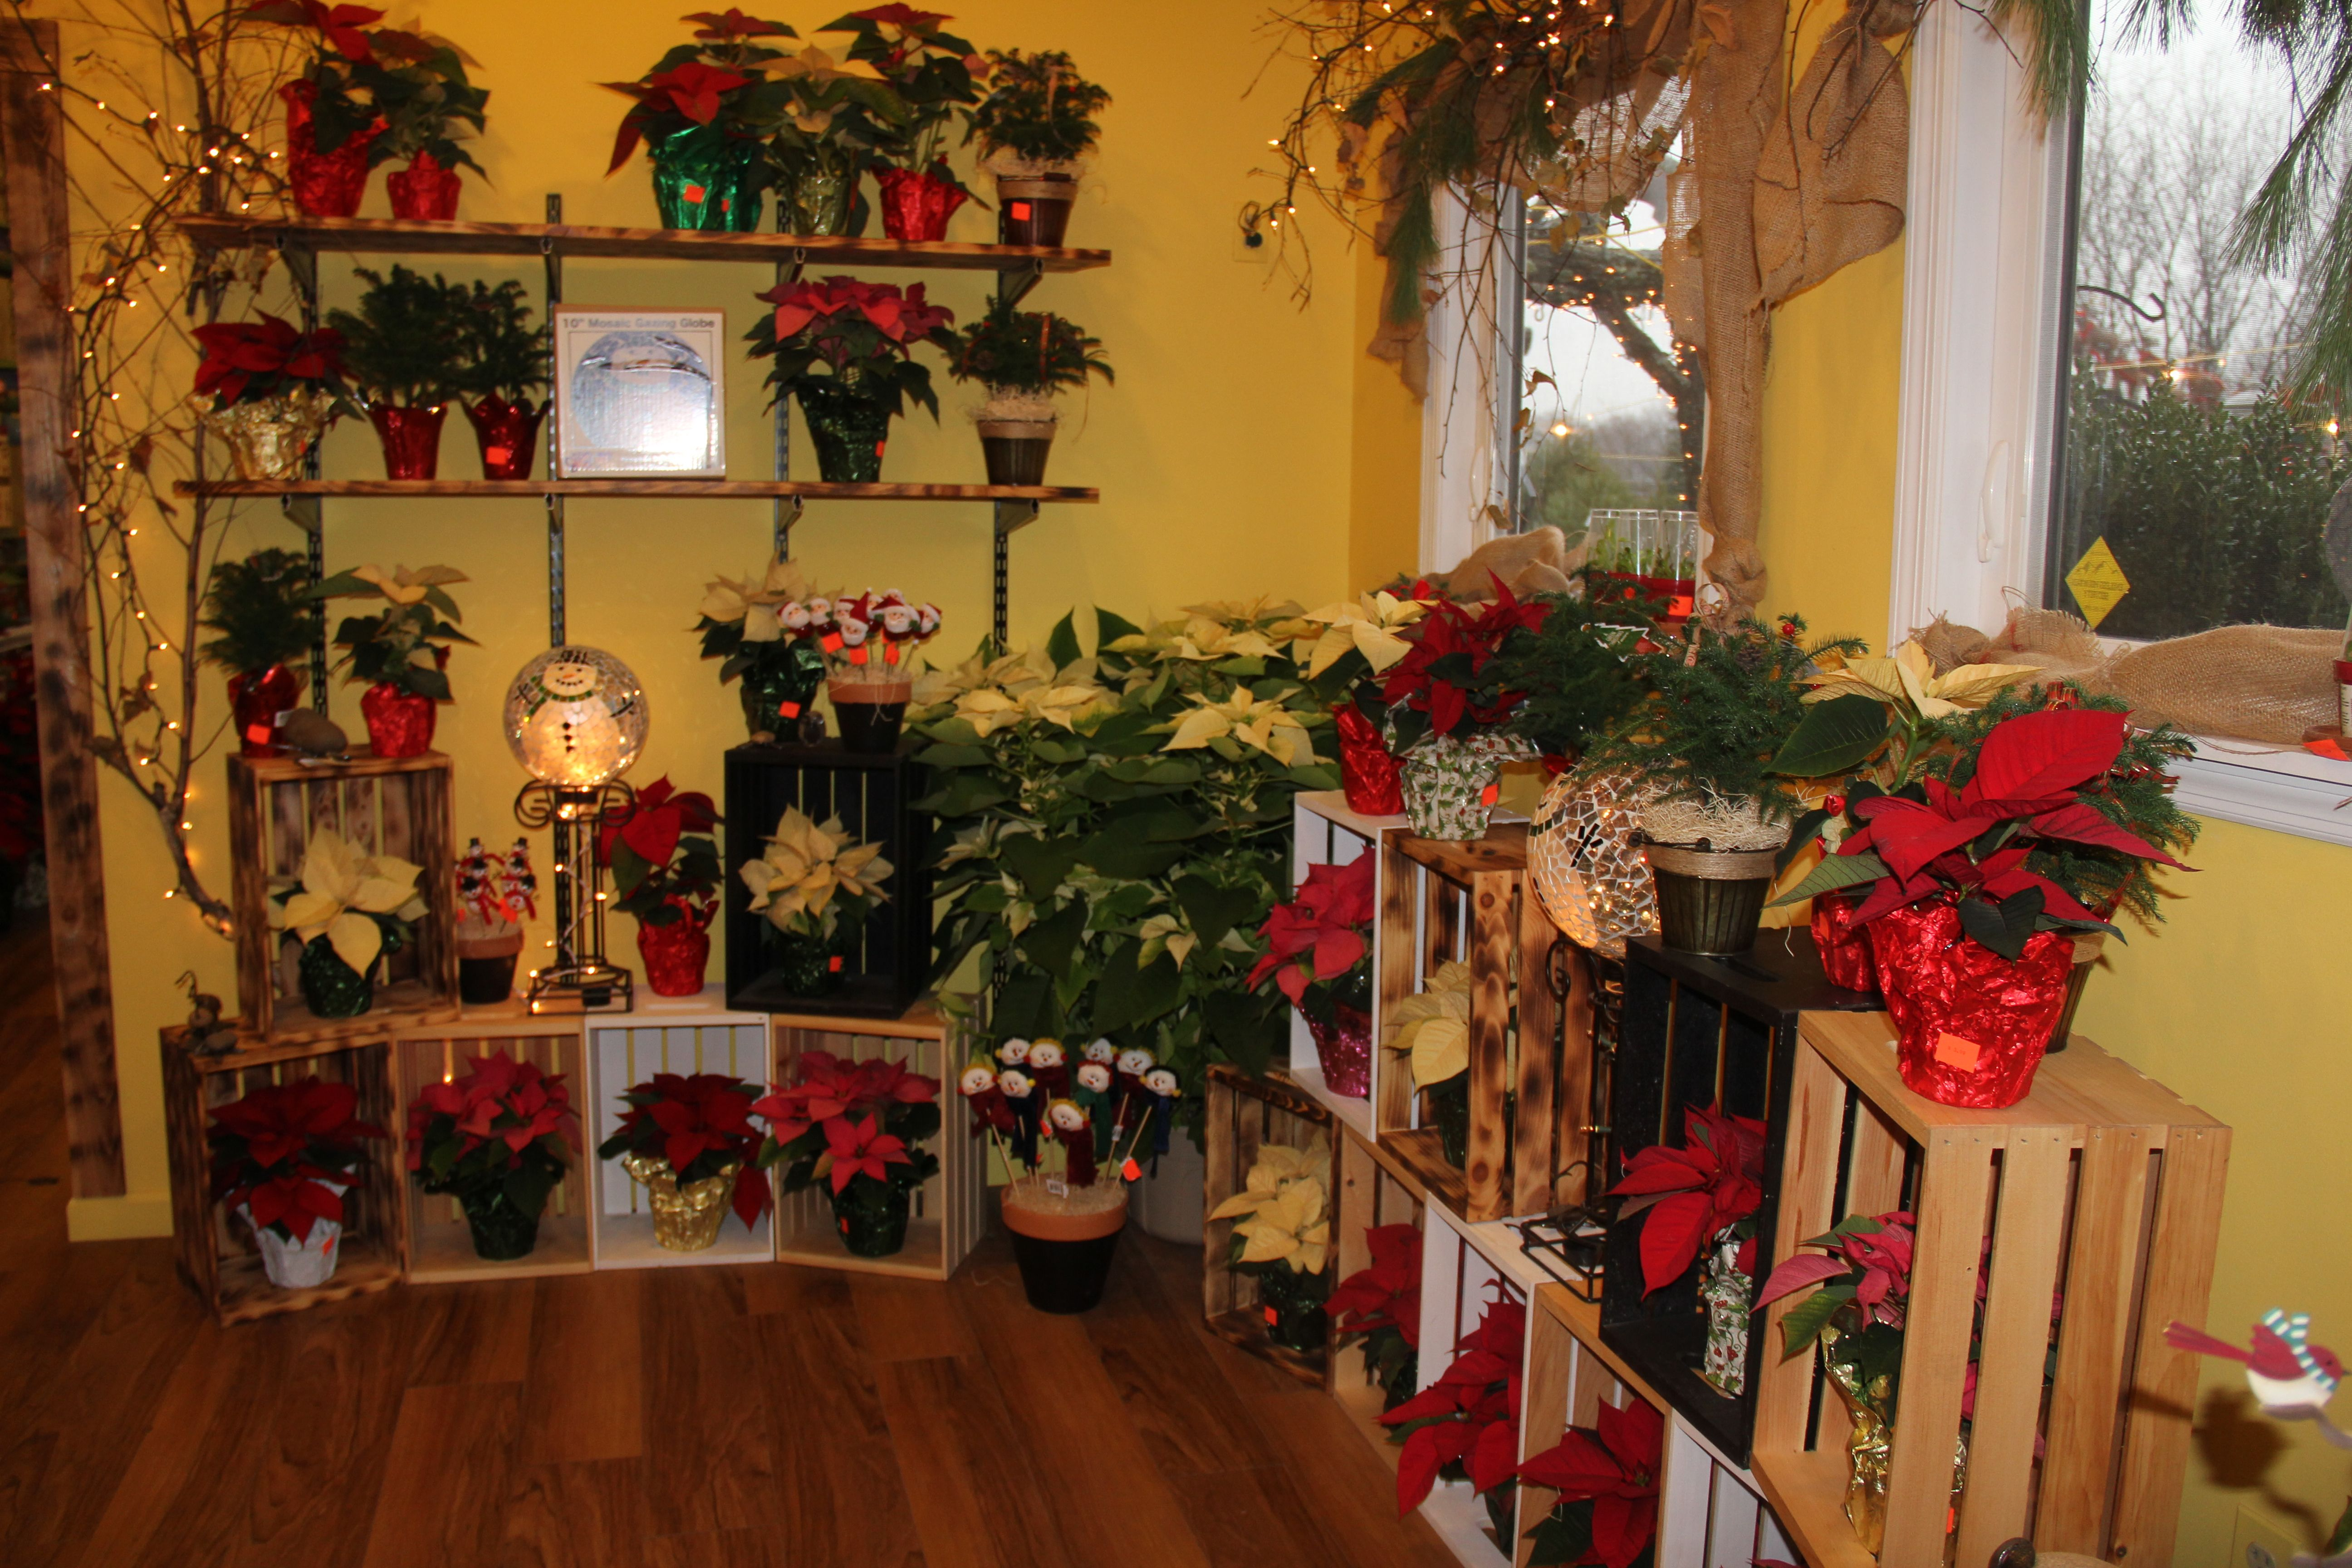 Edward's Garden Center has a whole room full of poinsettias for you to chose from!